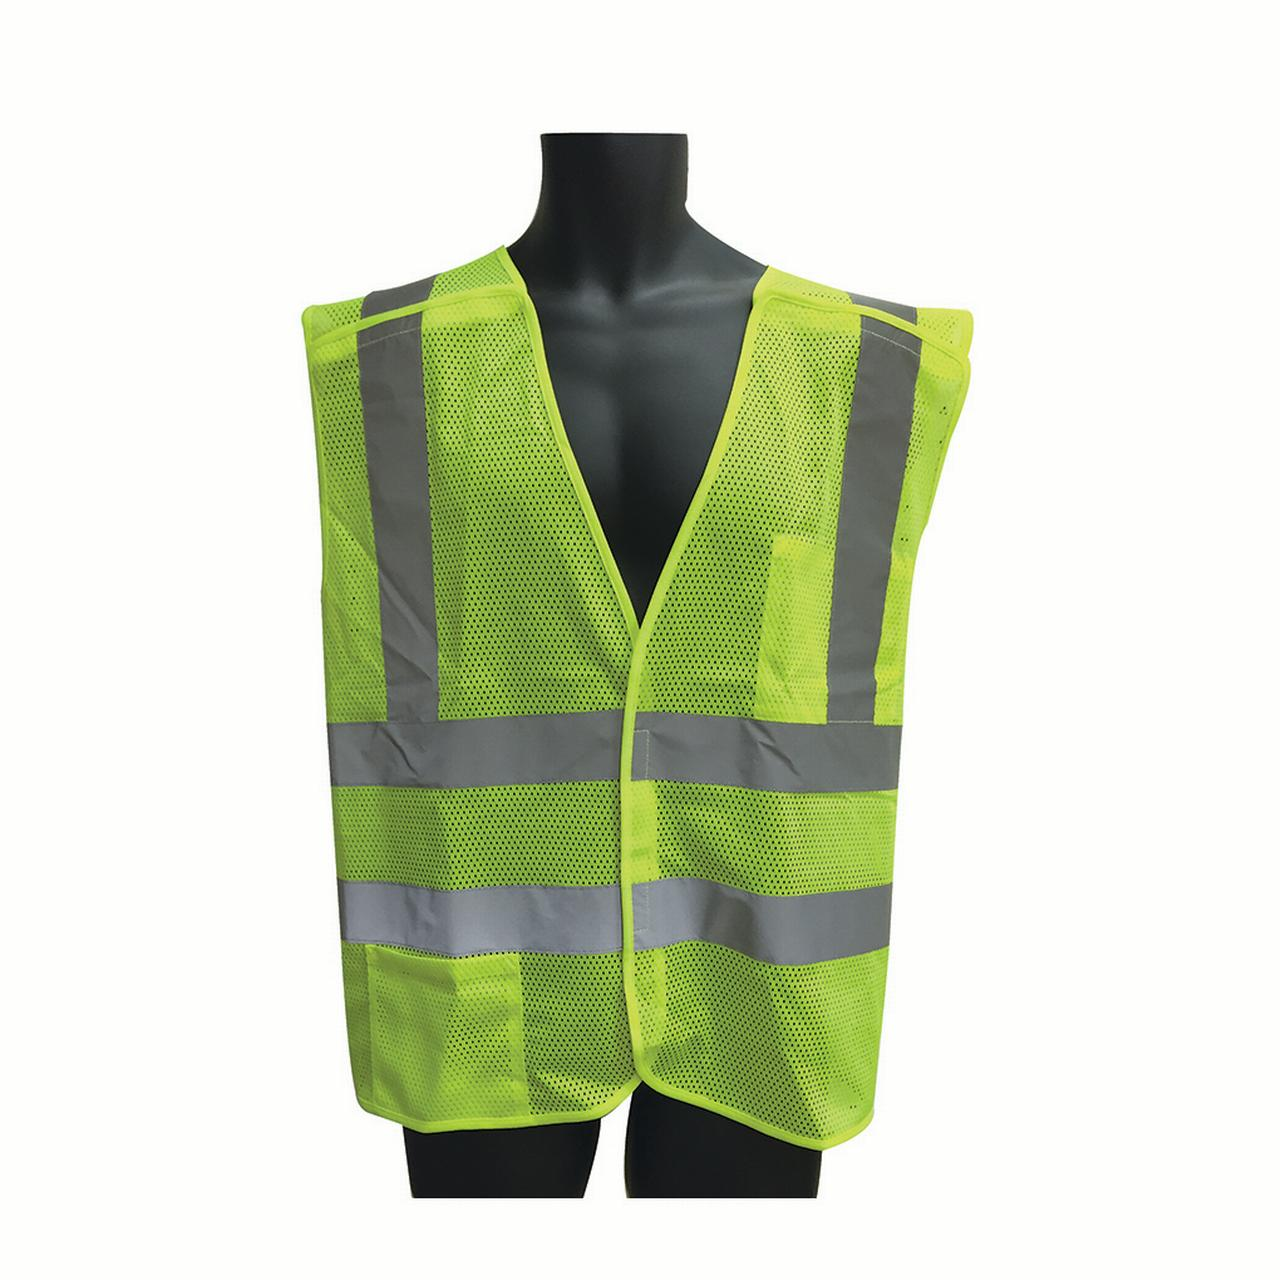 Class II, 5-Point Breakaway Vest Lime Green Mesh. Size: Medium Lot of 1 Pack(s) of 1 Unit